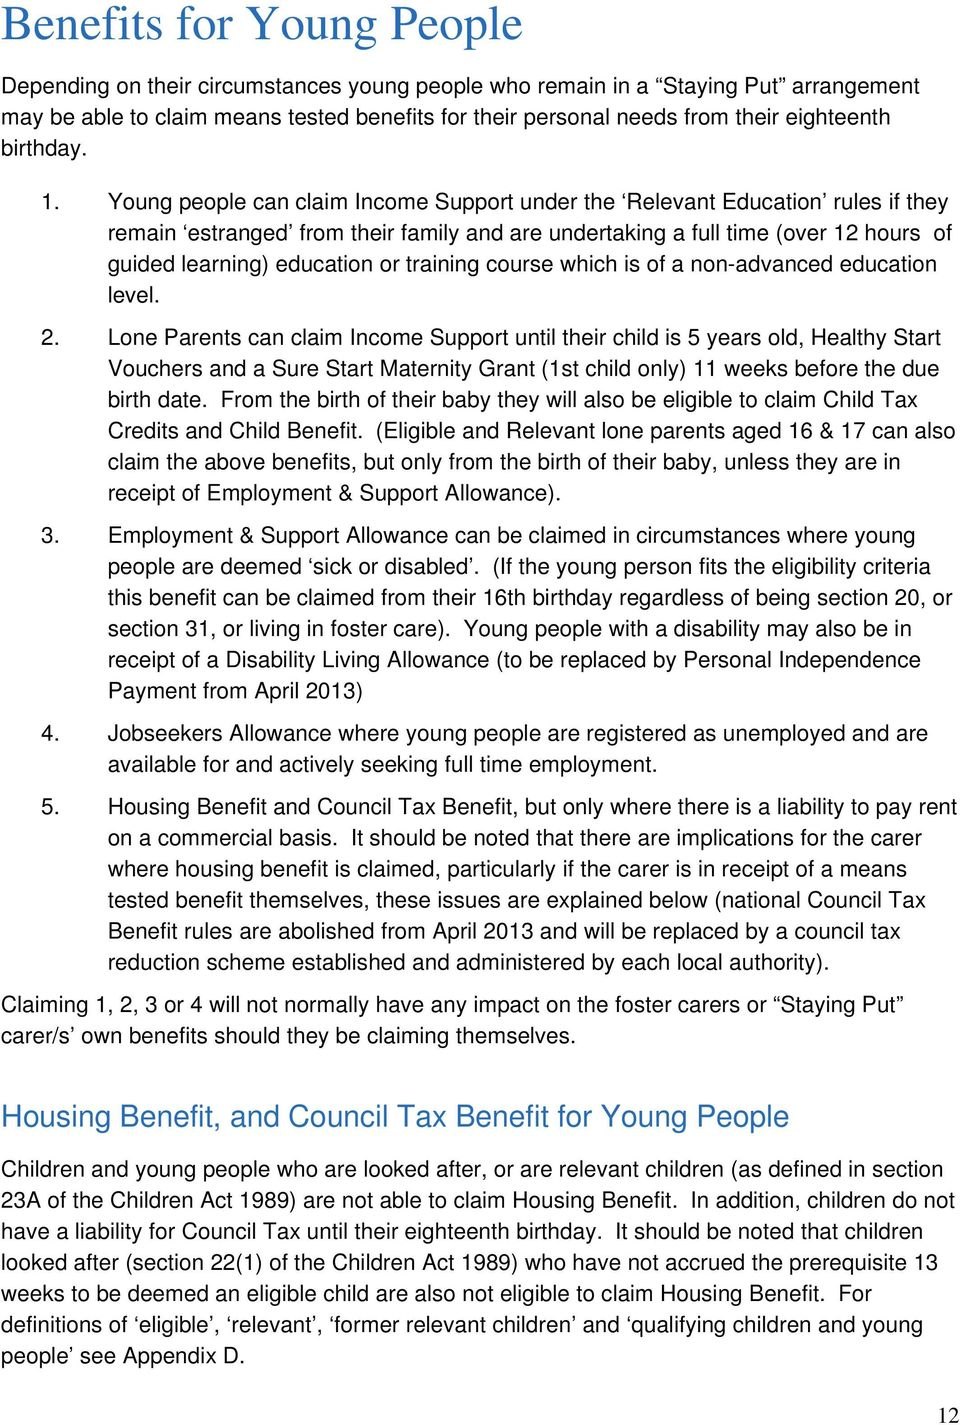 Young people can claim Income Support under the Relevant Education rules if they remain estranged from their family and are undertaking a full time (over 12 hours of guided learning) education or